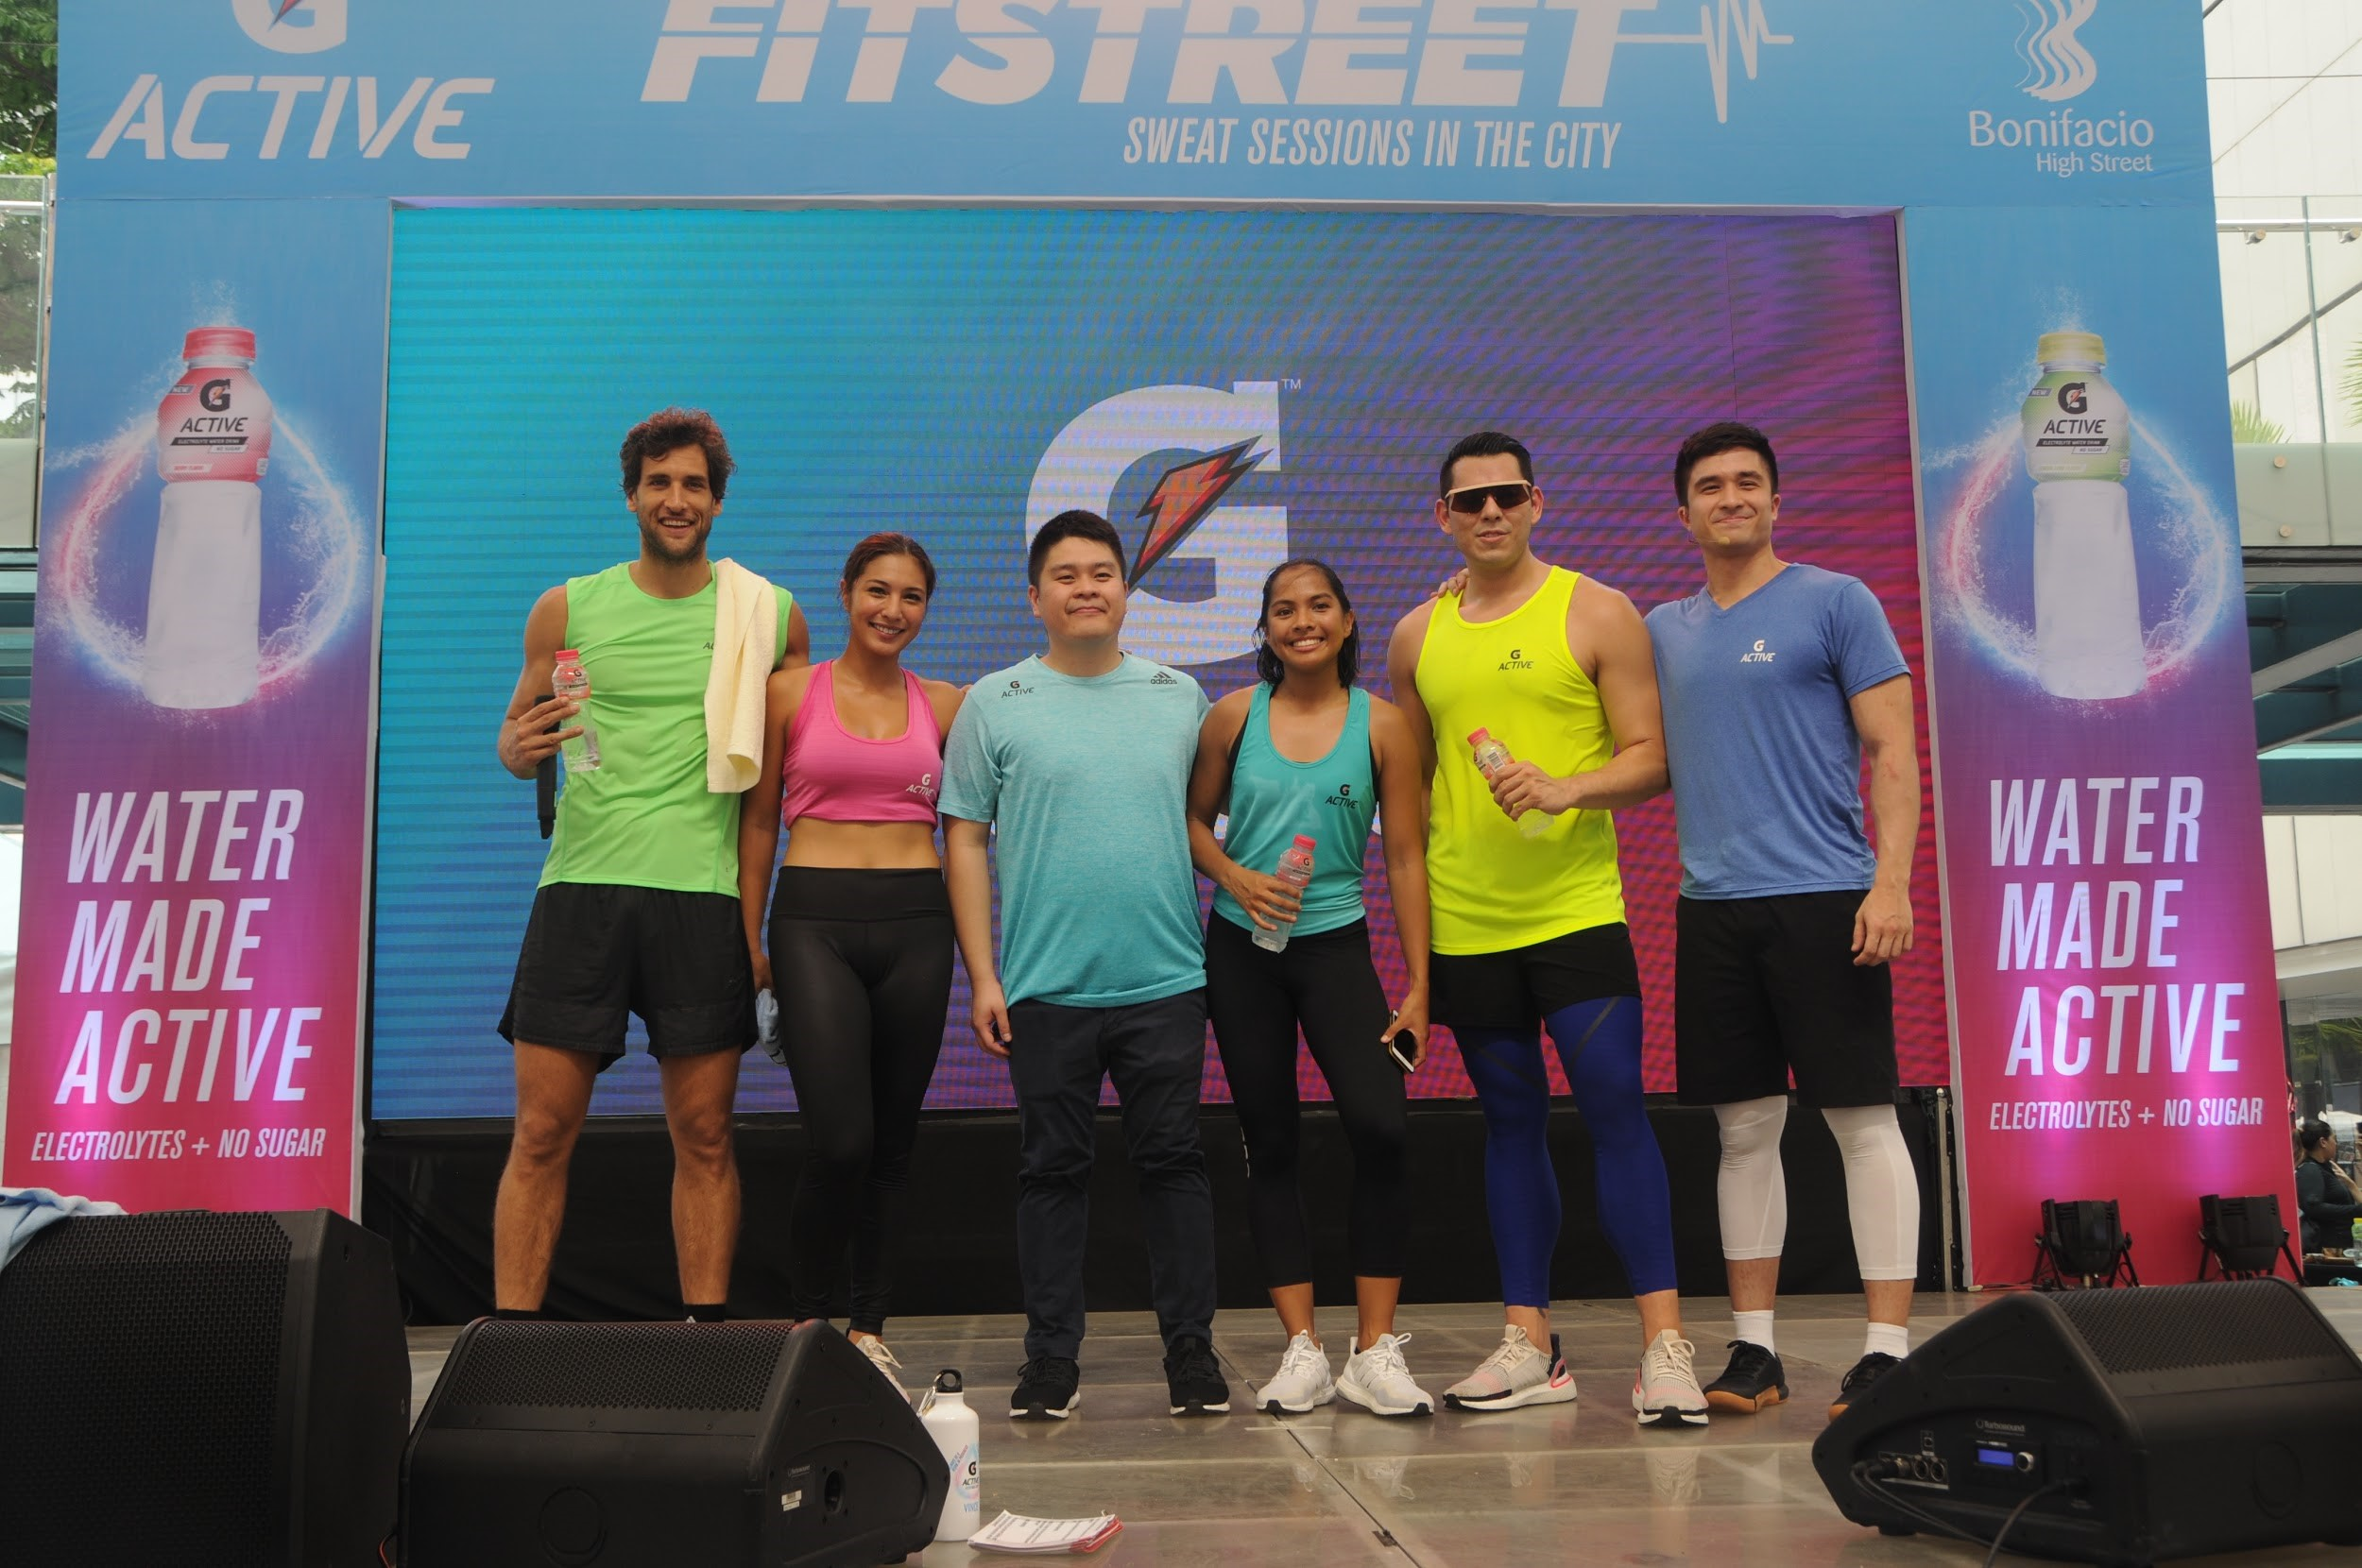 An All-Star BGC Fitstreet 2019 with G Active